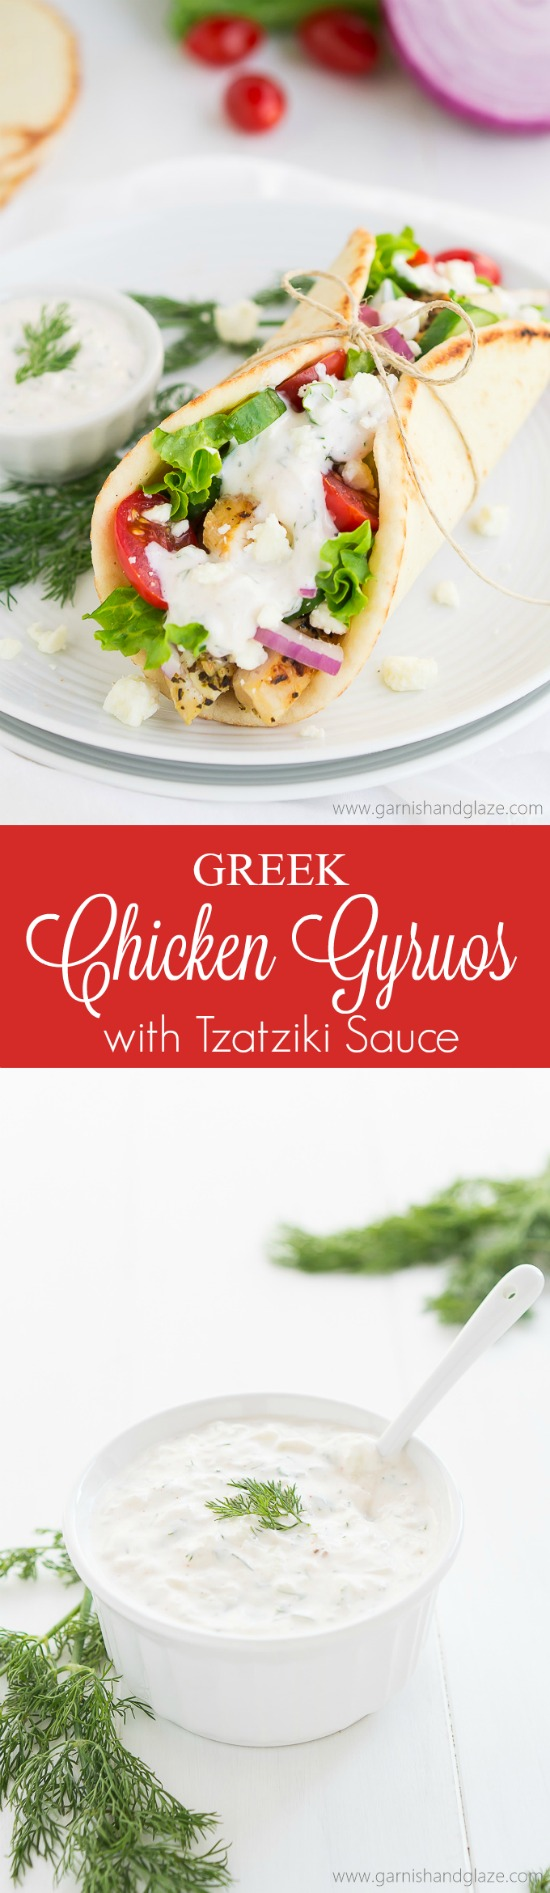 how to make tzatziki sauce for gyros